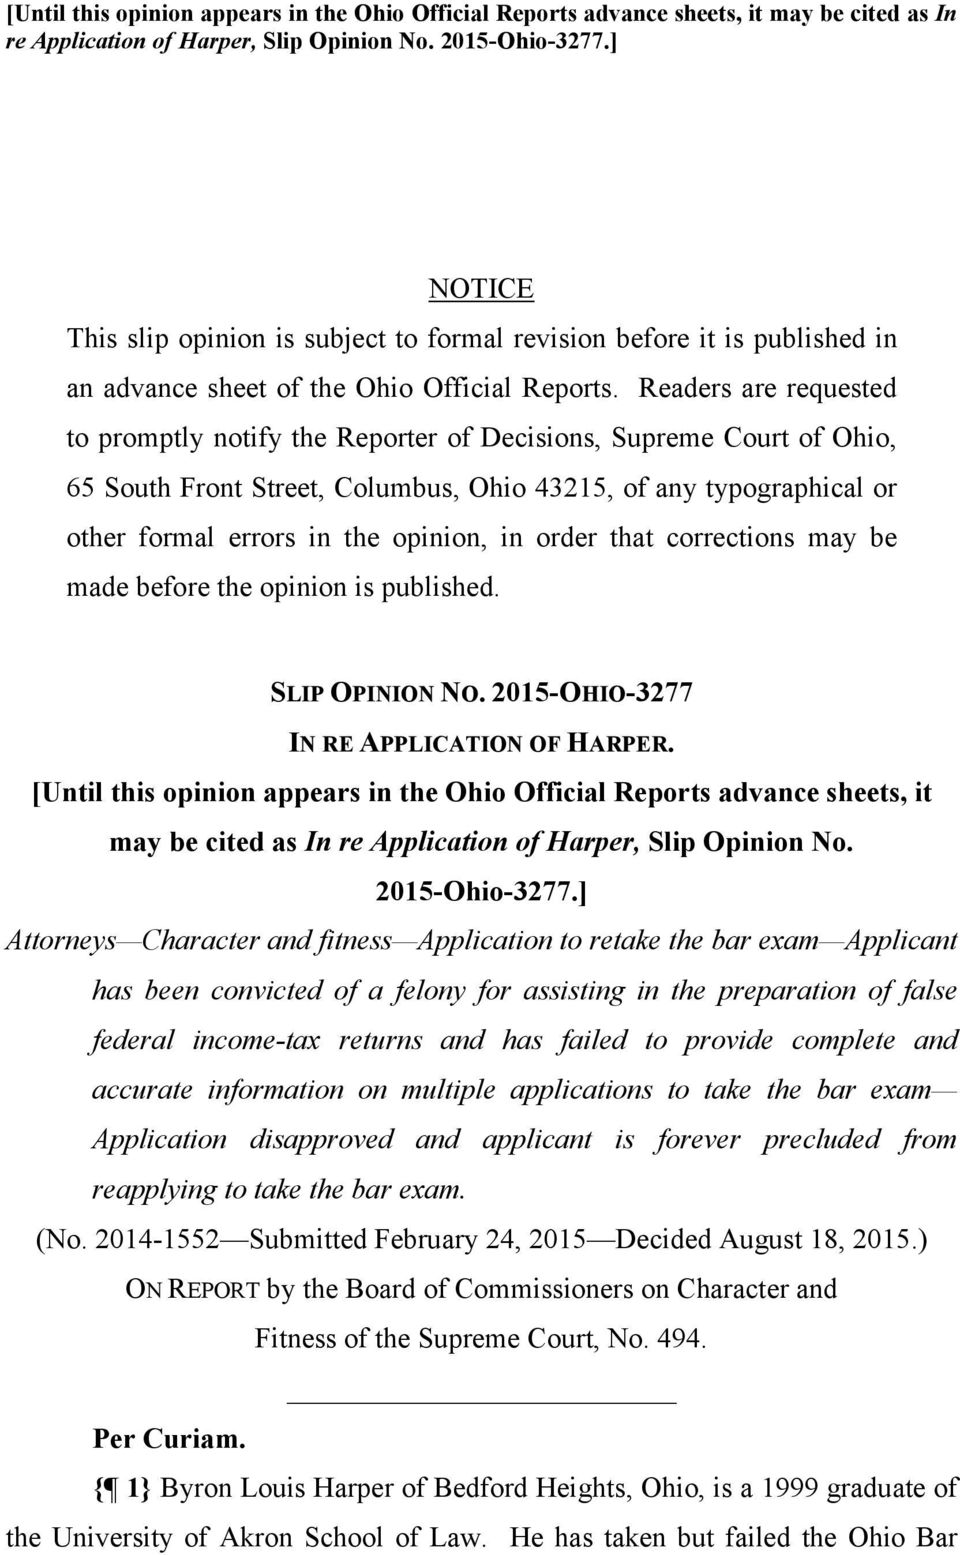 Readers are requested to promptly notify the Reporter of Decisions, Supreme Court of Ohio, 65 South Front Street, Columbus, Ohio 43215, of any typographical or other formal errors in the opinion, in